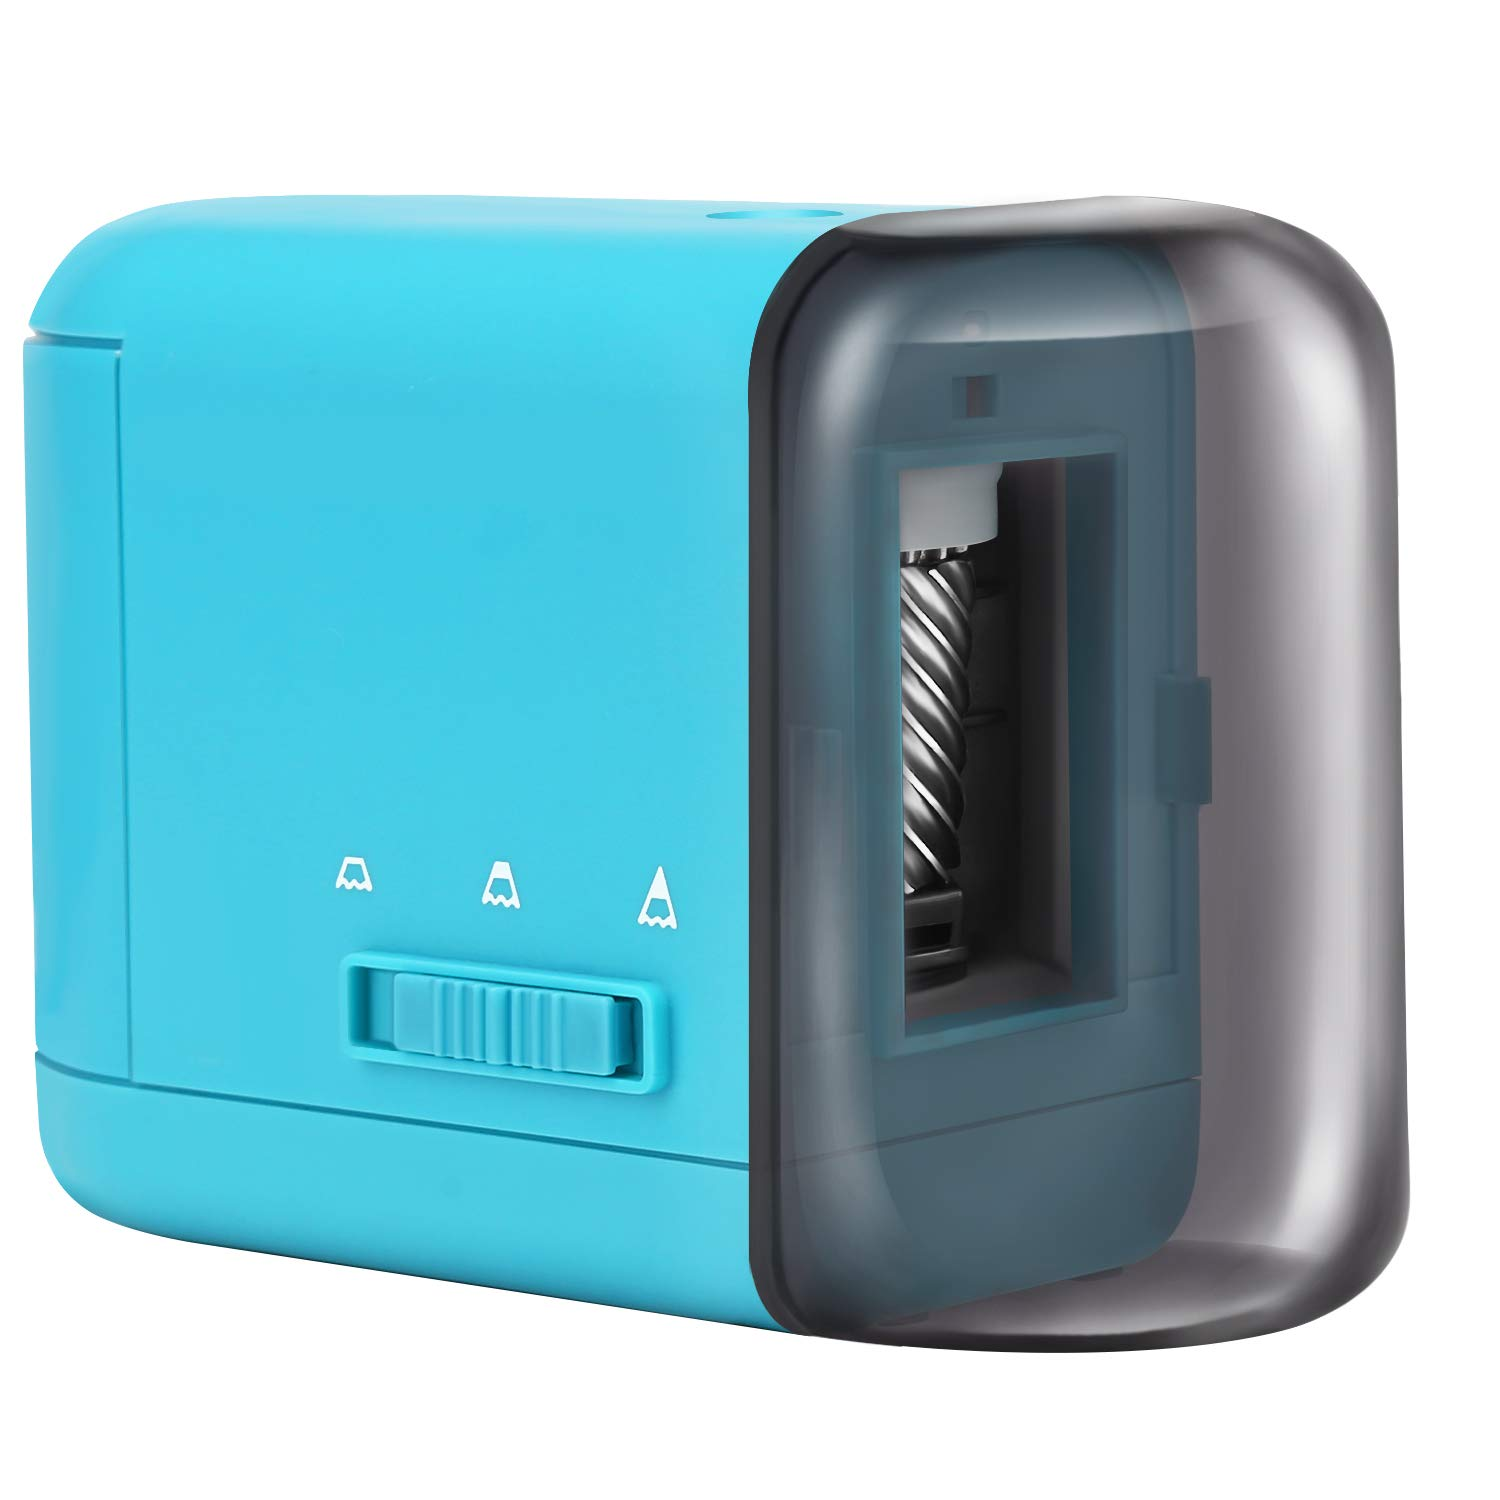 Color Pencil Sharpener-Battery Operated Electric Pencil Sharpener, Heavy Duty Helical Blade Sharpener for No.2 and Colored Pencils for Kids, Students, Adults, Artists, Blue